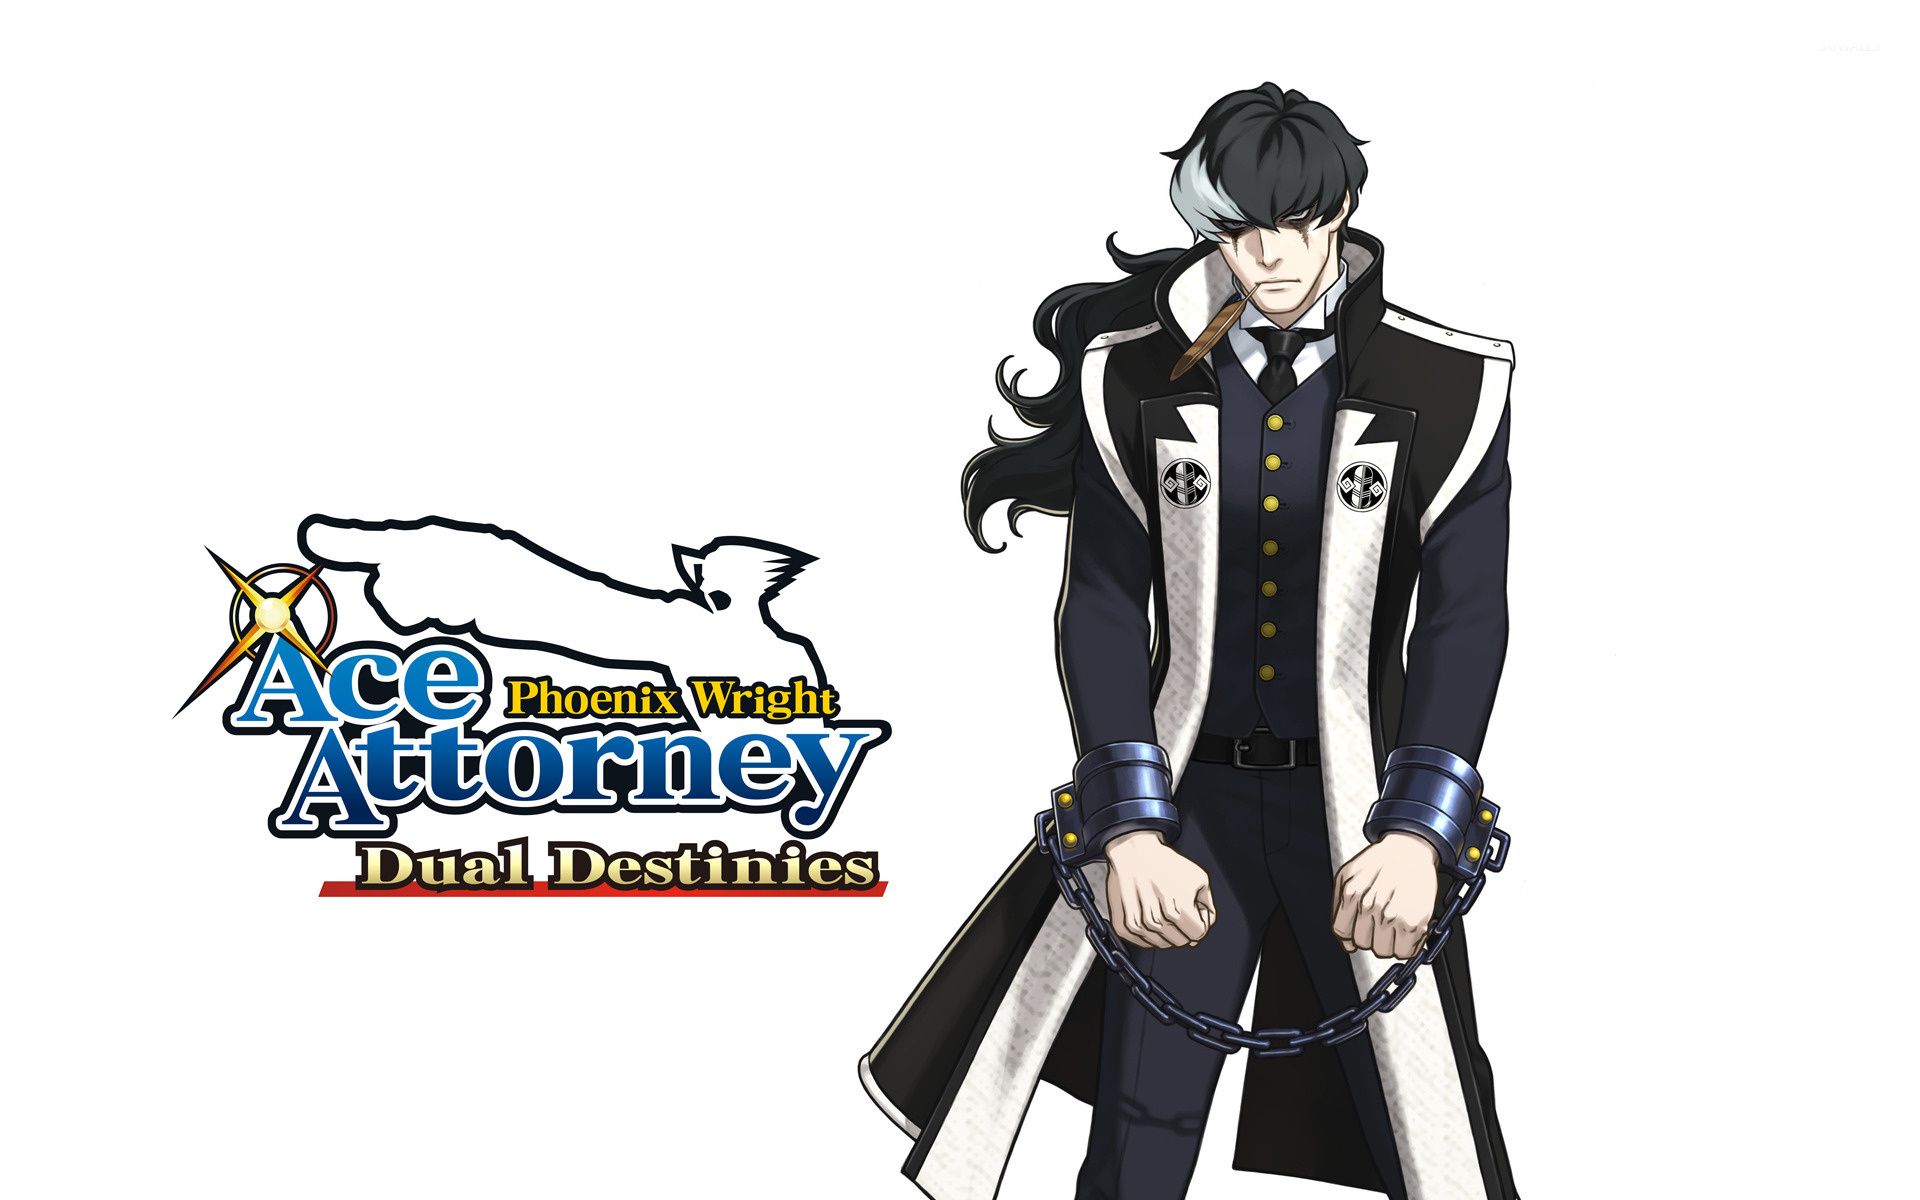 Phoenix Wright Ace Attorney Dual Destinies 2 Wallpaper Game